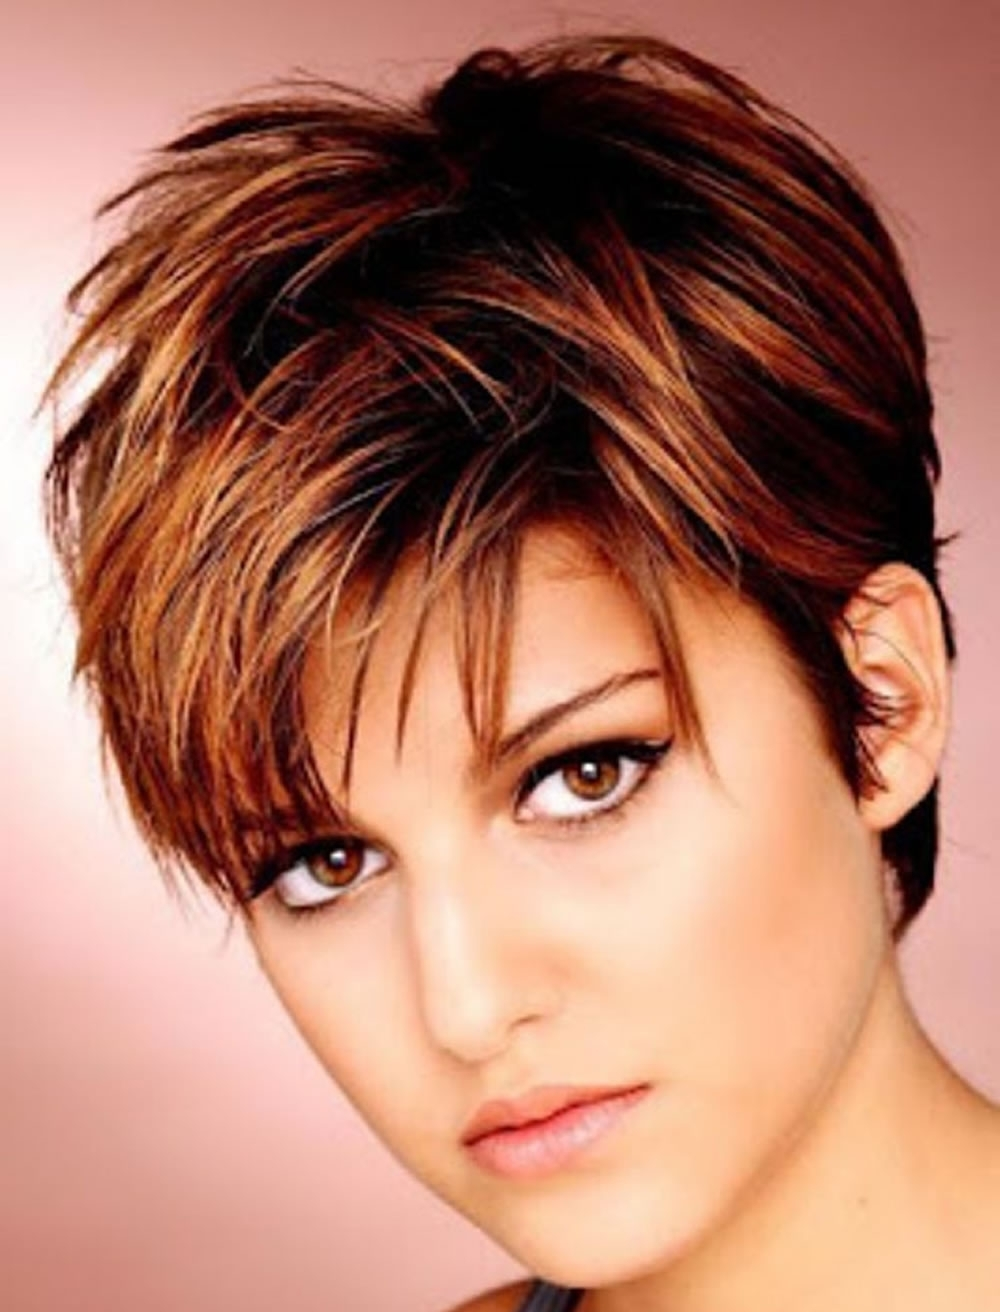 Haircuts For Round Face Thin Hair Ideas For 2018 With Newest Long Pixie Hairstyles For Thin Hair (View 12 of 15)